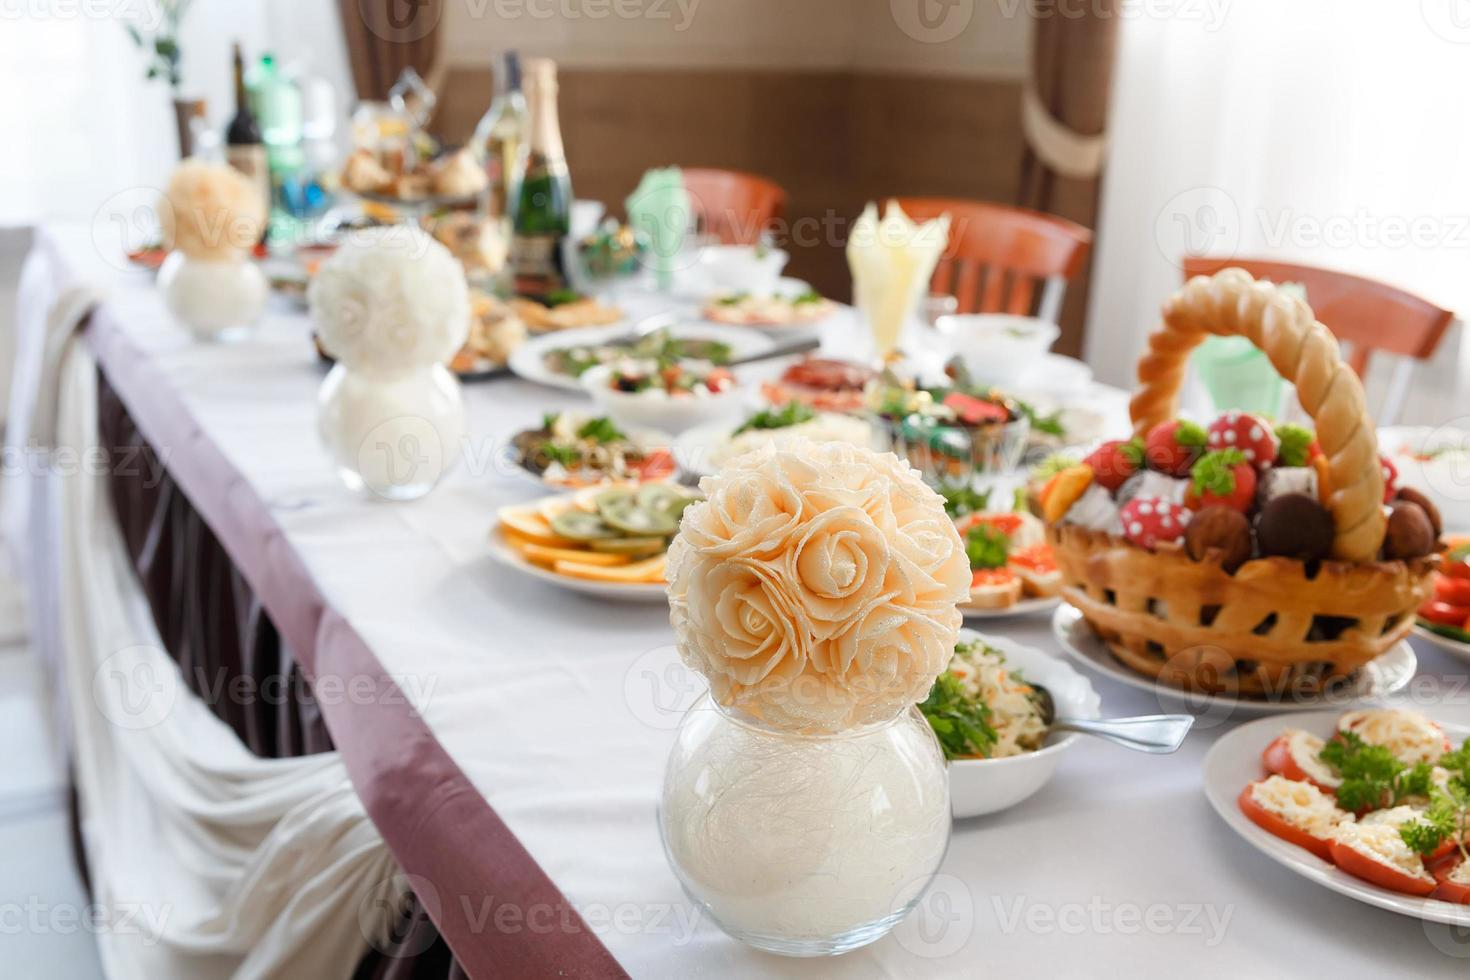 Served for a banquet table photo